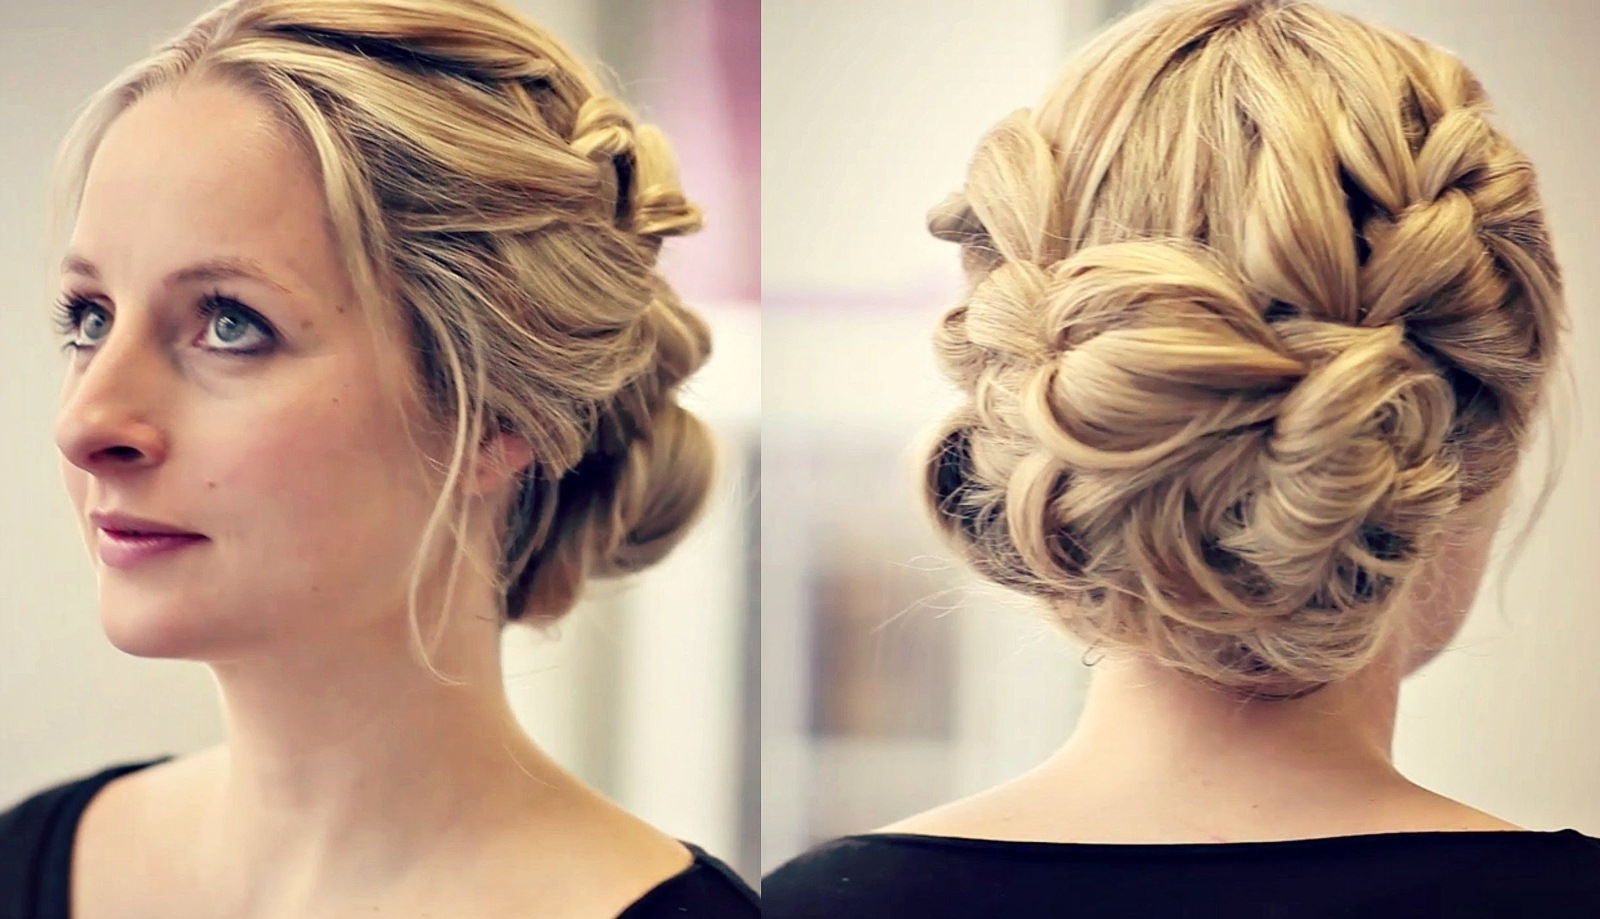 Updo Hairstyles For Weddings Mother Of The Bride – Hairstyle For Throughout Mother Of The Bride Updos (View 8 of 15)